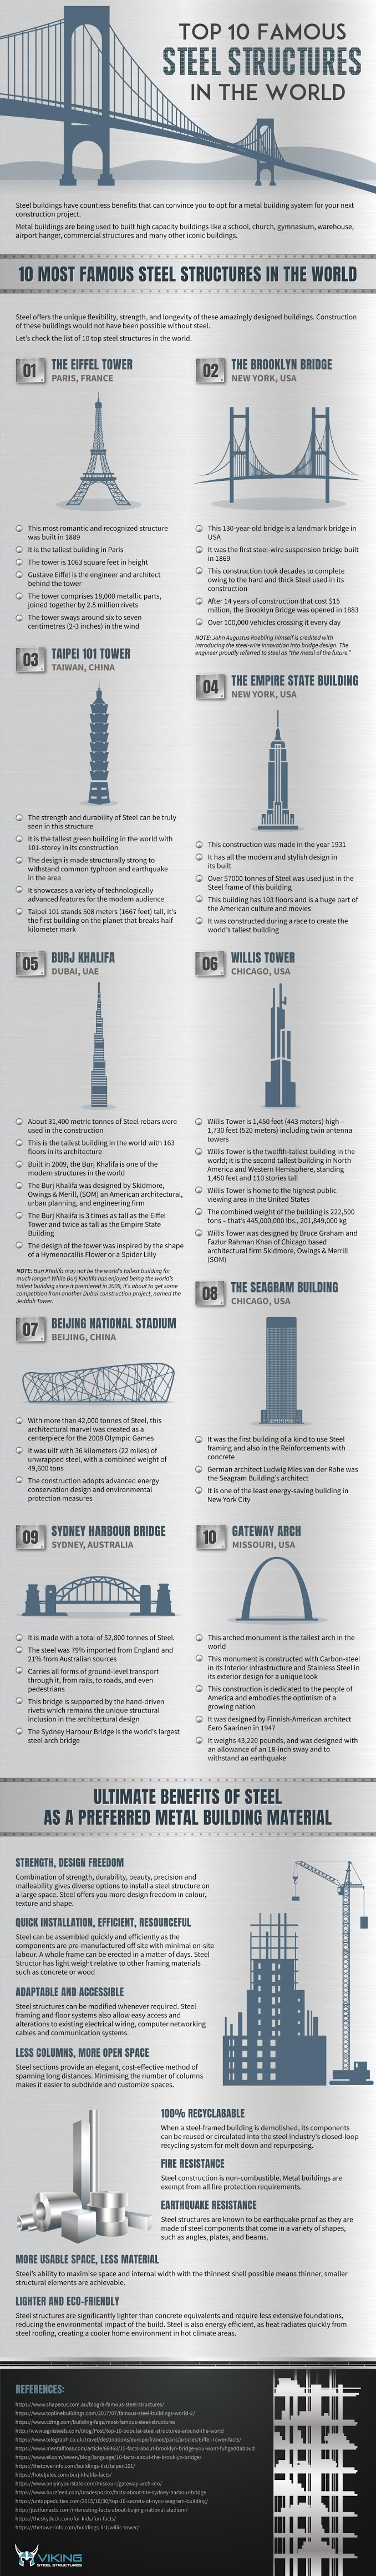 Top 10 Famous Steel Structures in The World #infographic